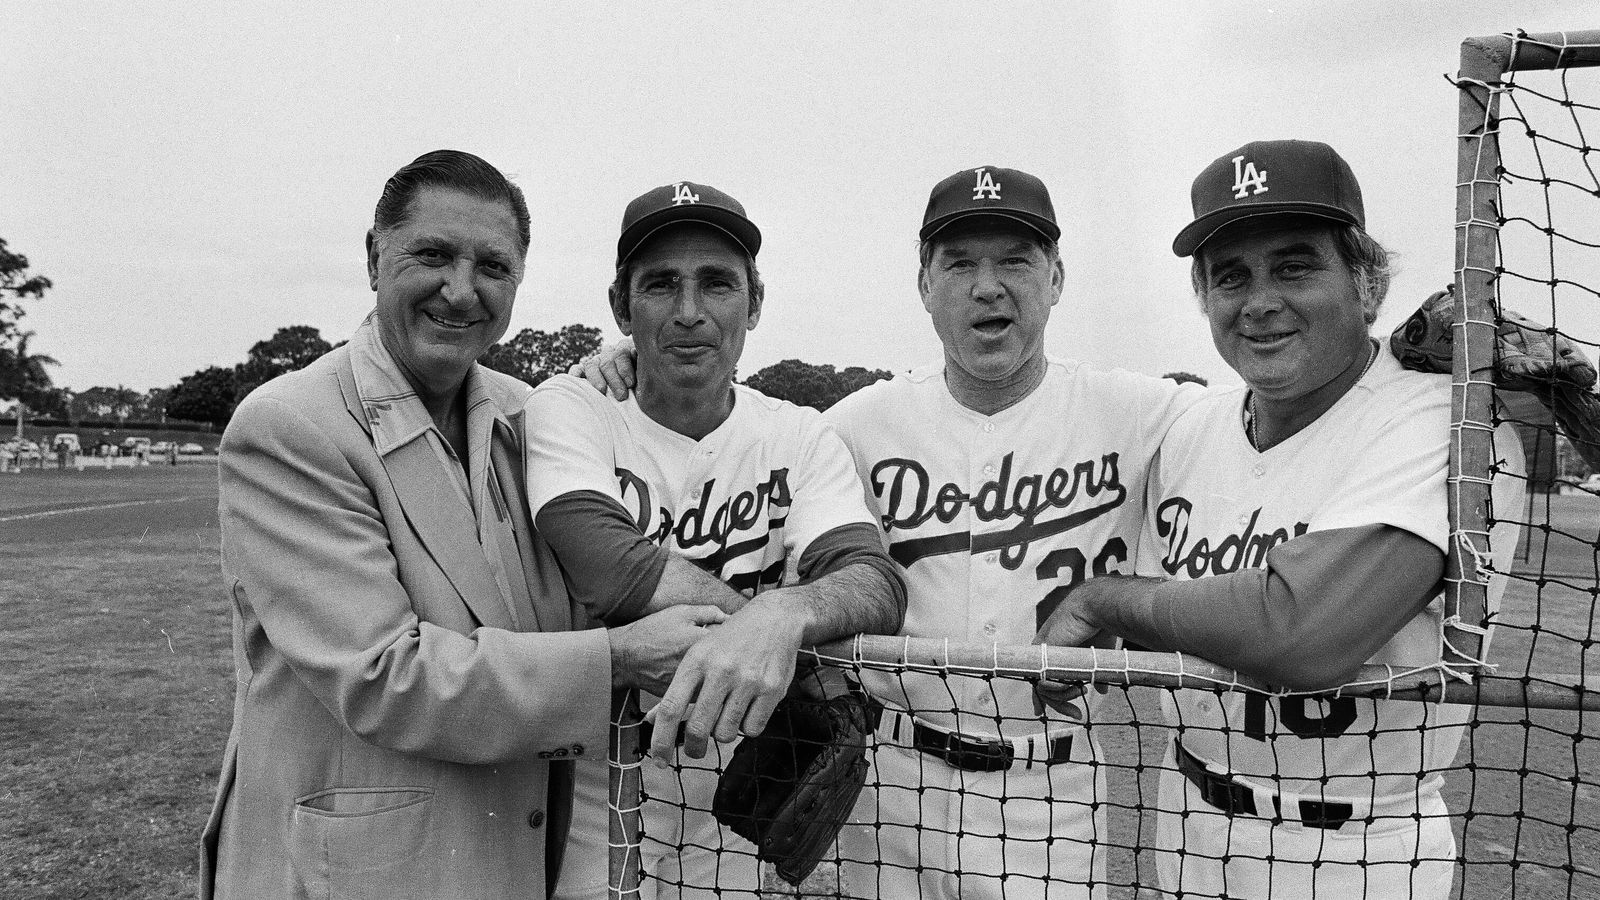 Campanis_koufax_red_adams_dodgers_1979_sporting_news_getty.0